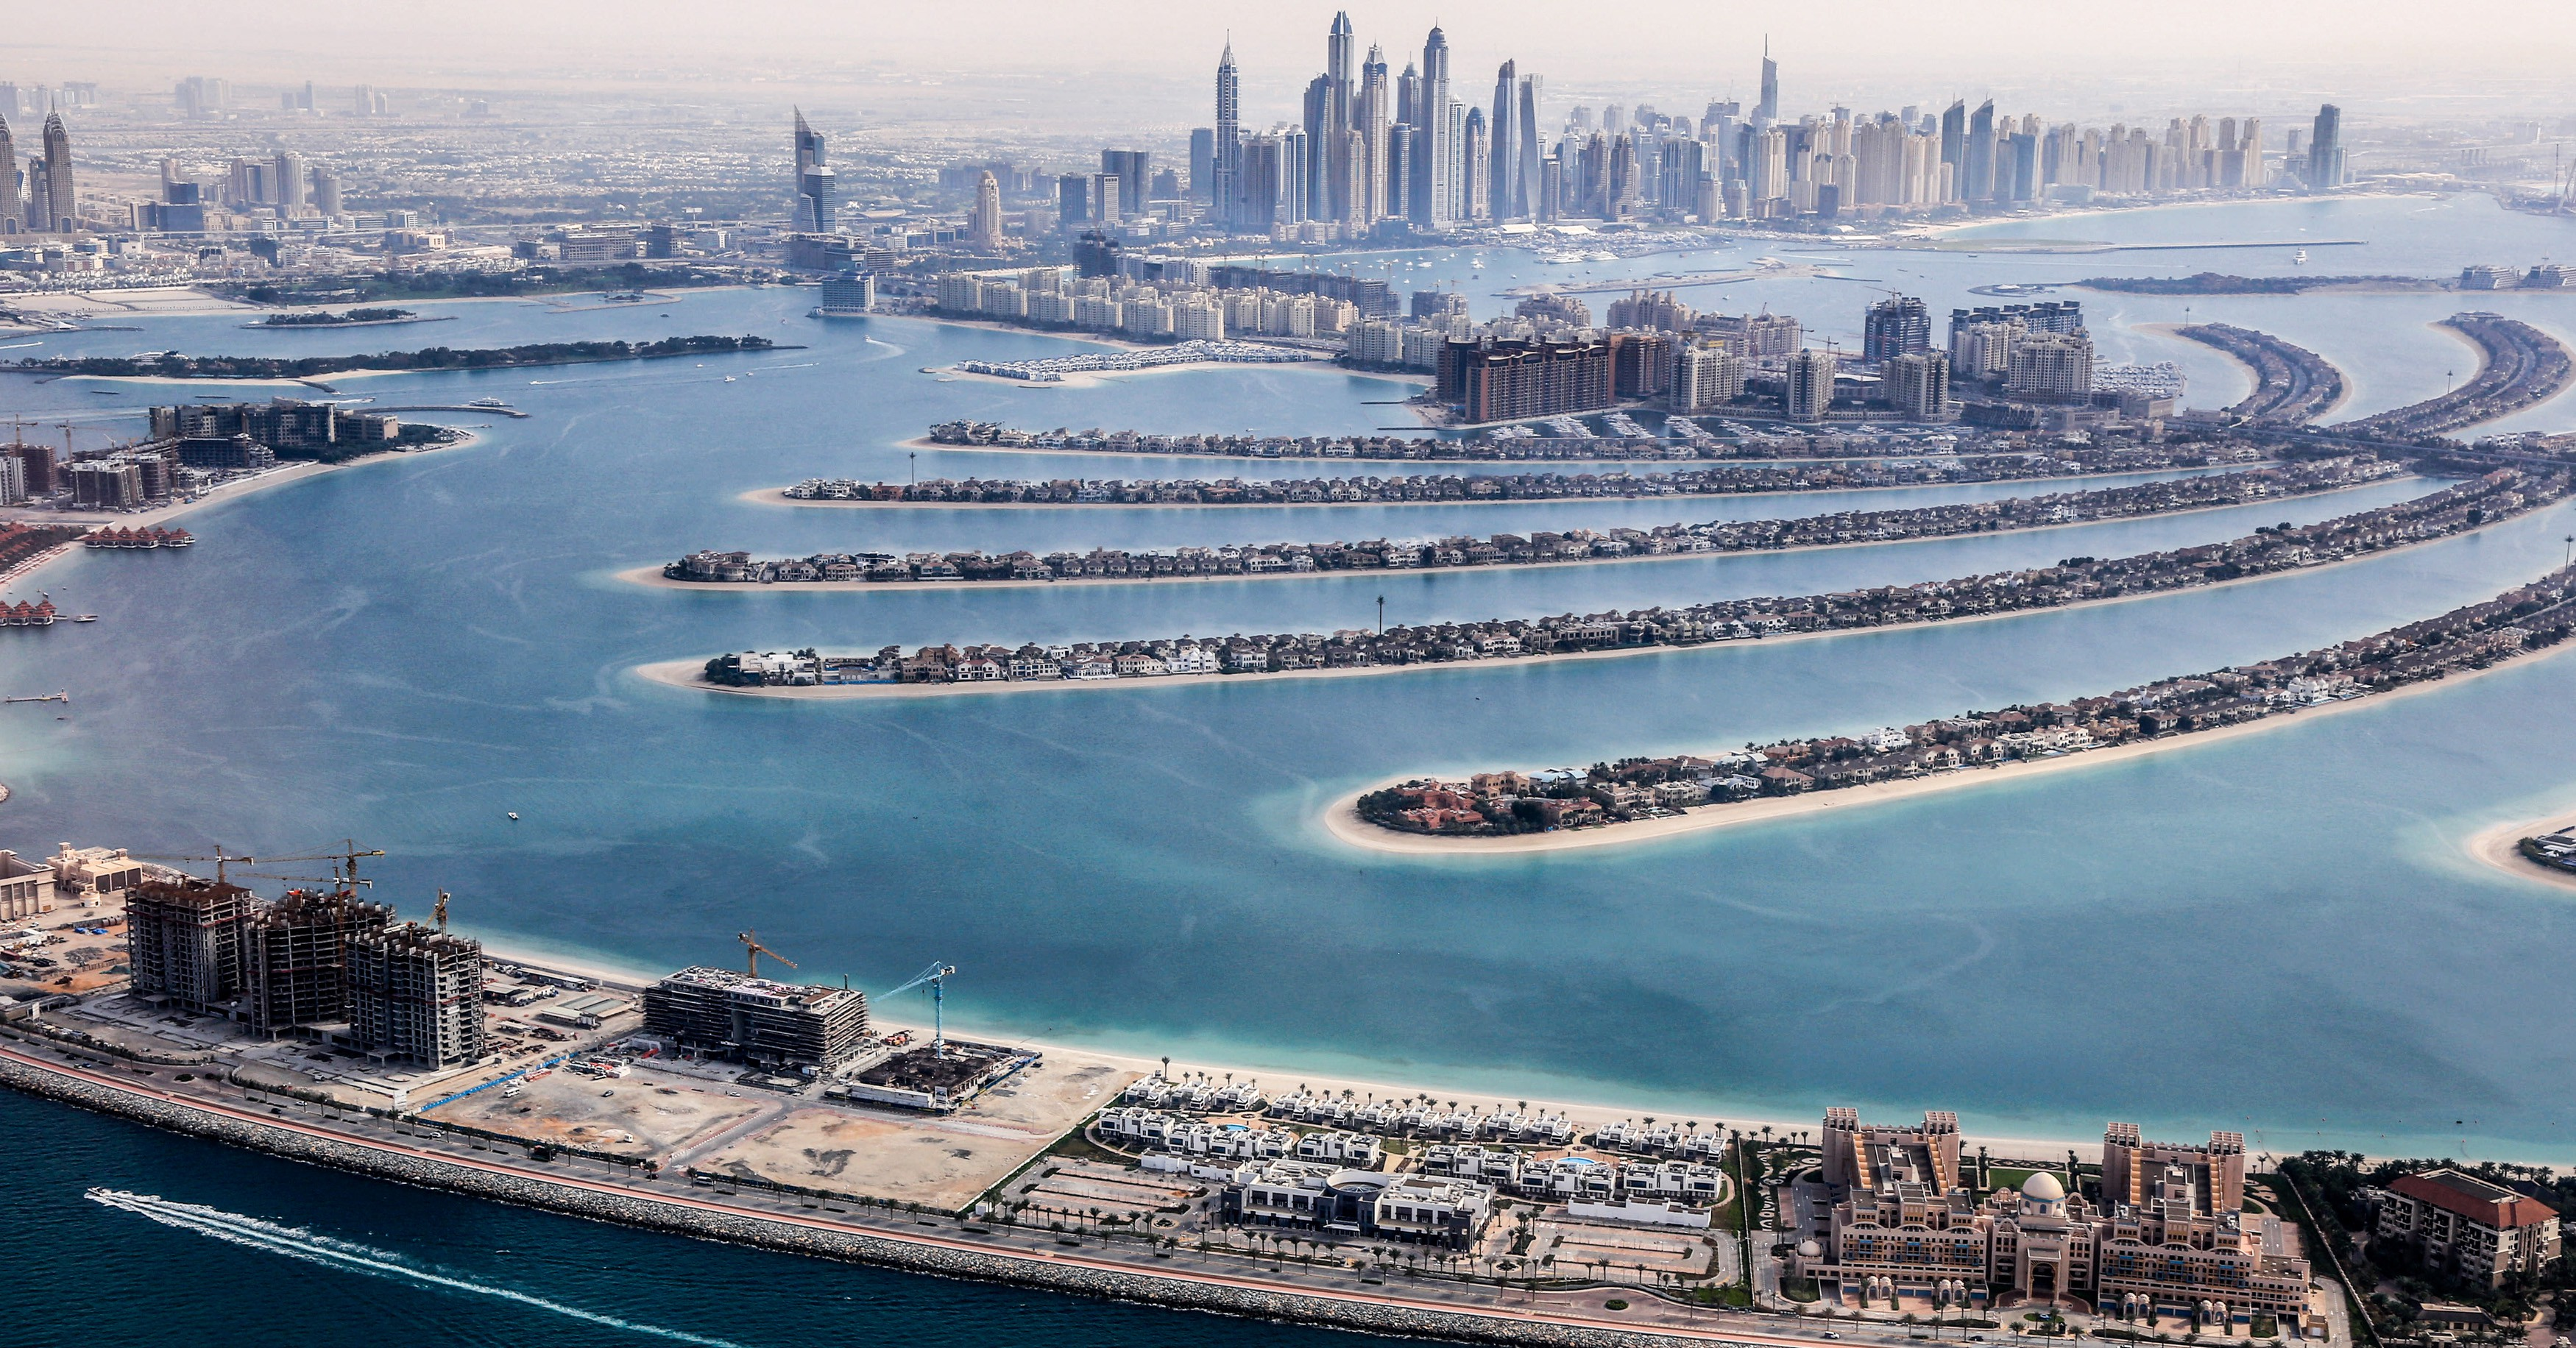 Aerial view of the Palm Jumeirah Island, UAE